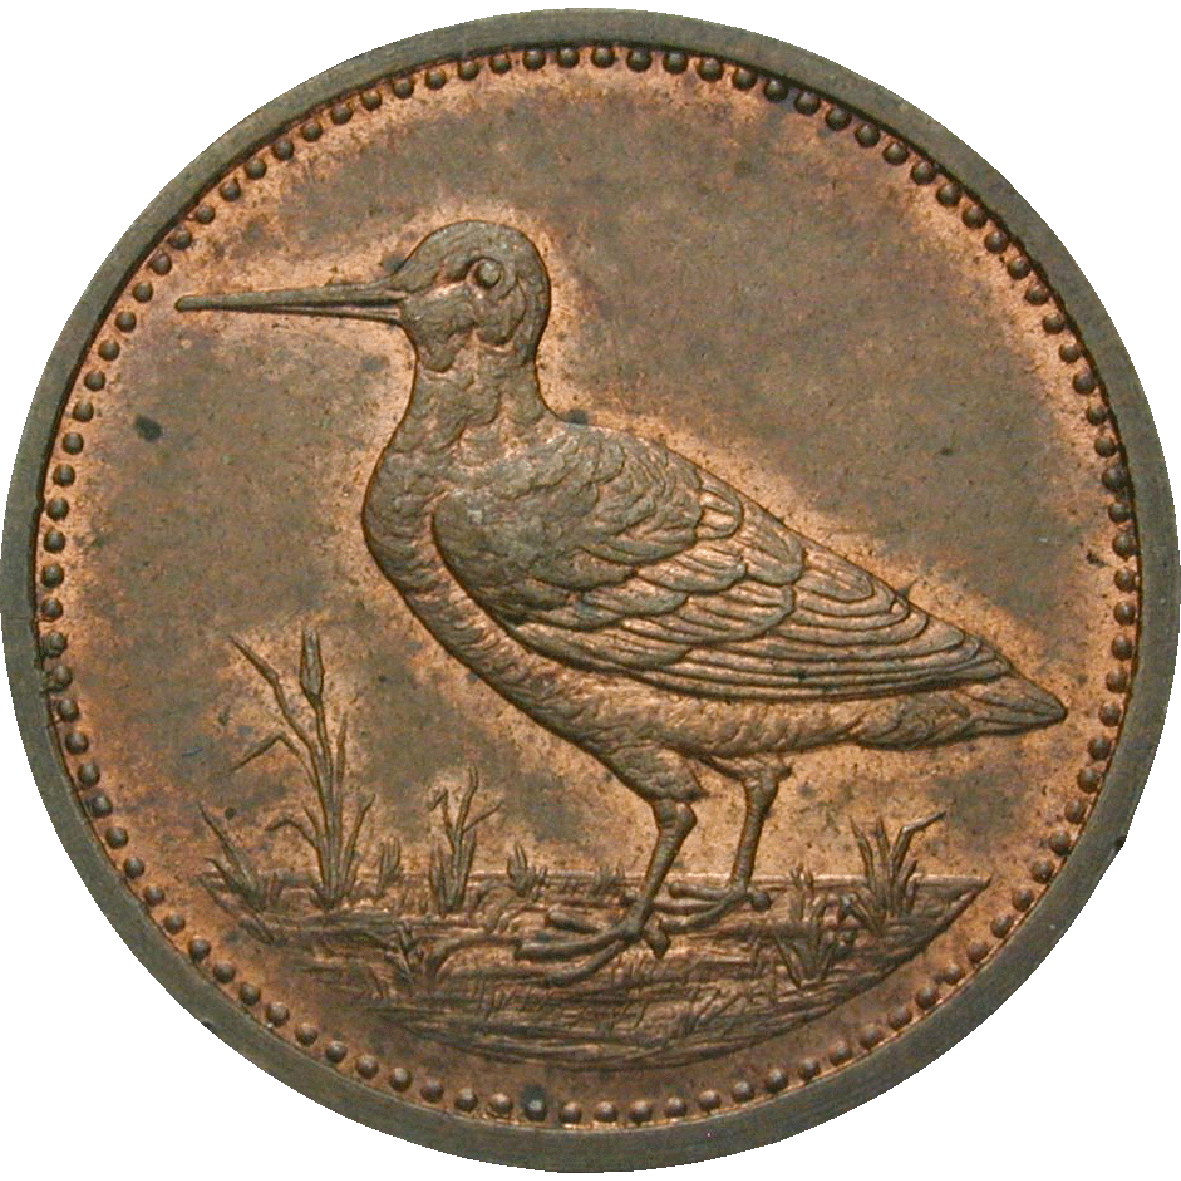 German Confederation, County of Ysenburg-Büdingen, Bruno, Schnepfenheller (obverse)